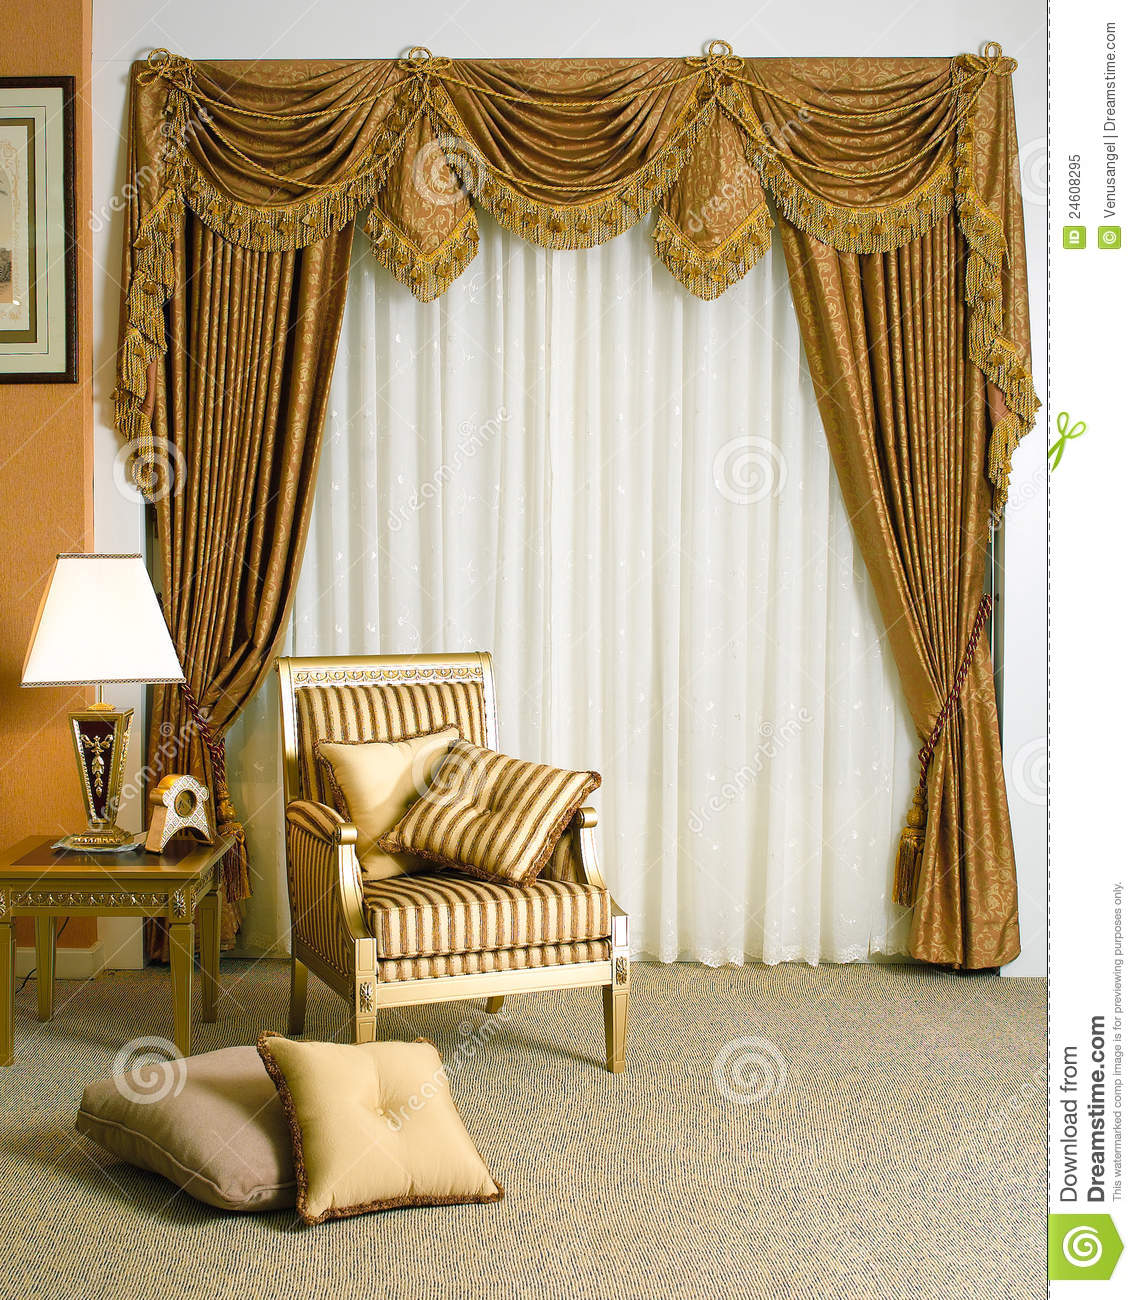 Beautiful Curtain In Living Room Stock Image Image Of Floor Carve 24608295